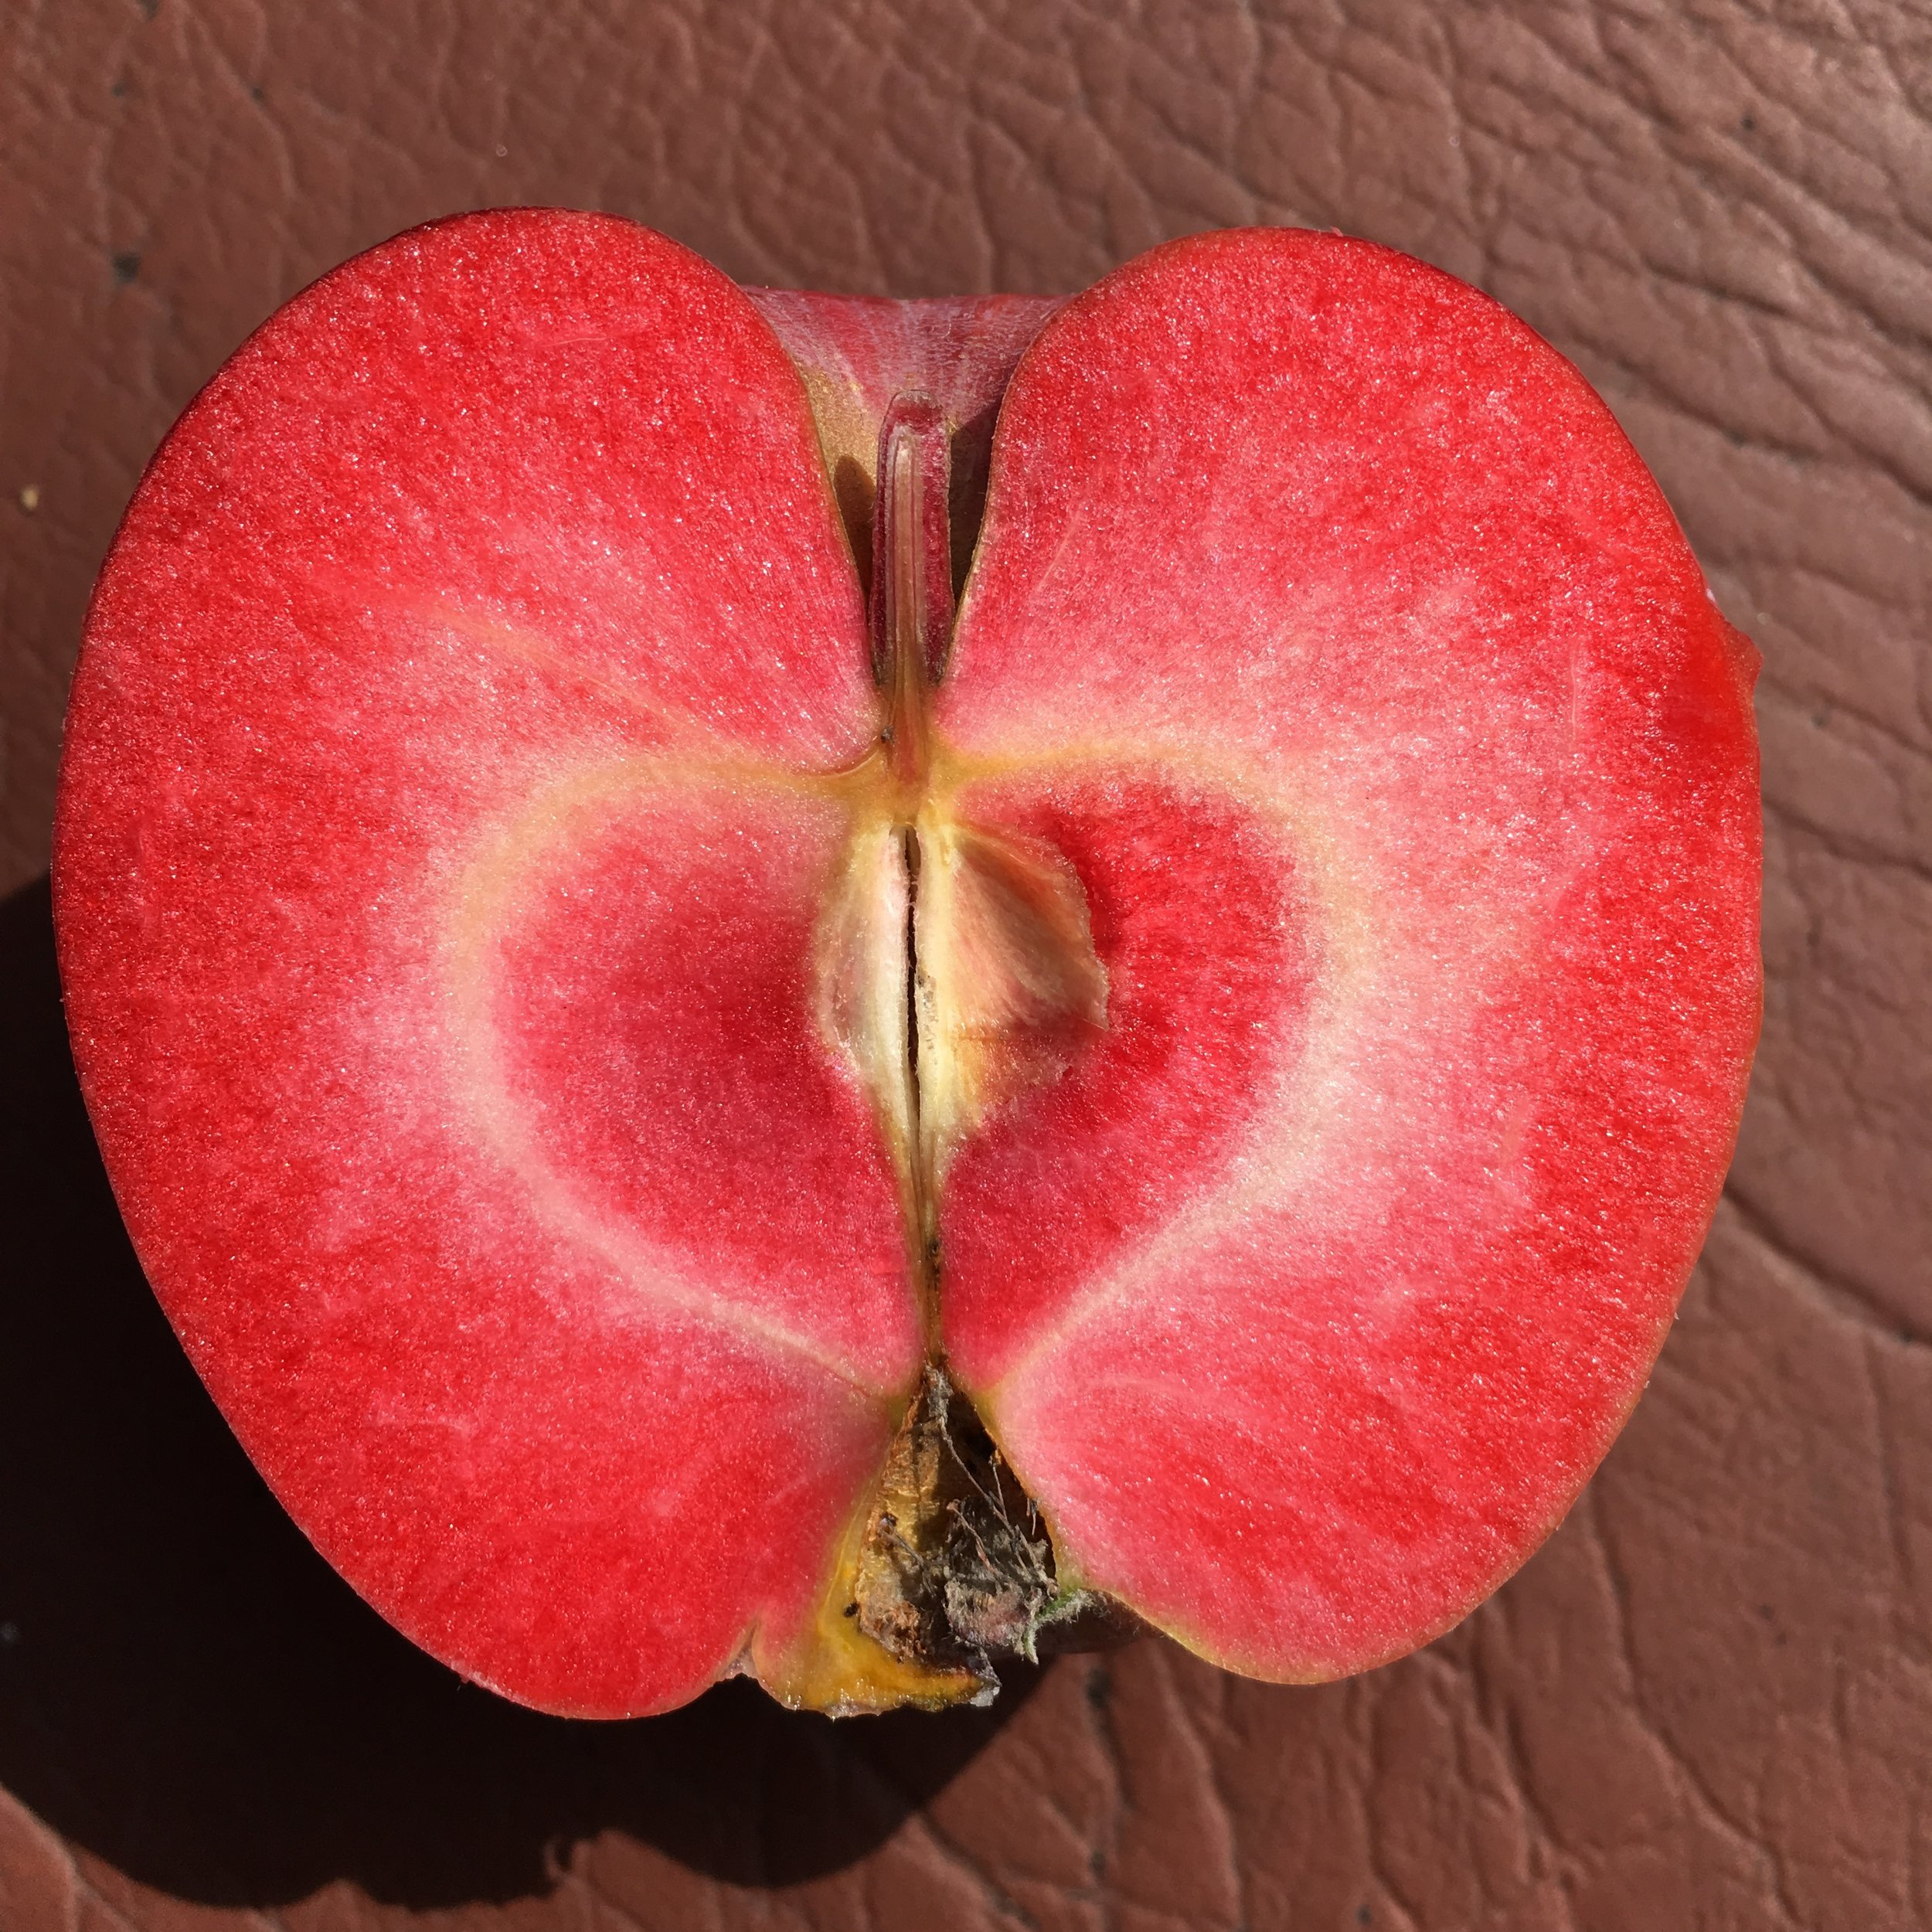 The Almata Apple, just picked!